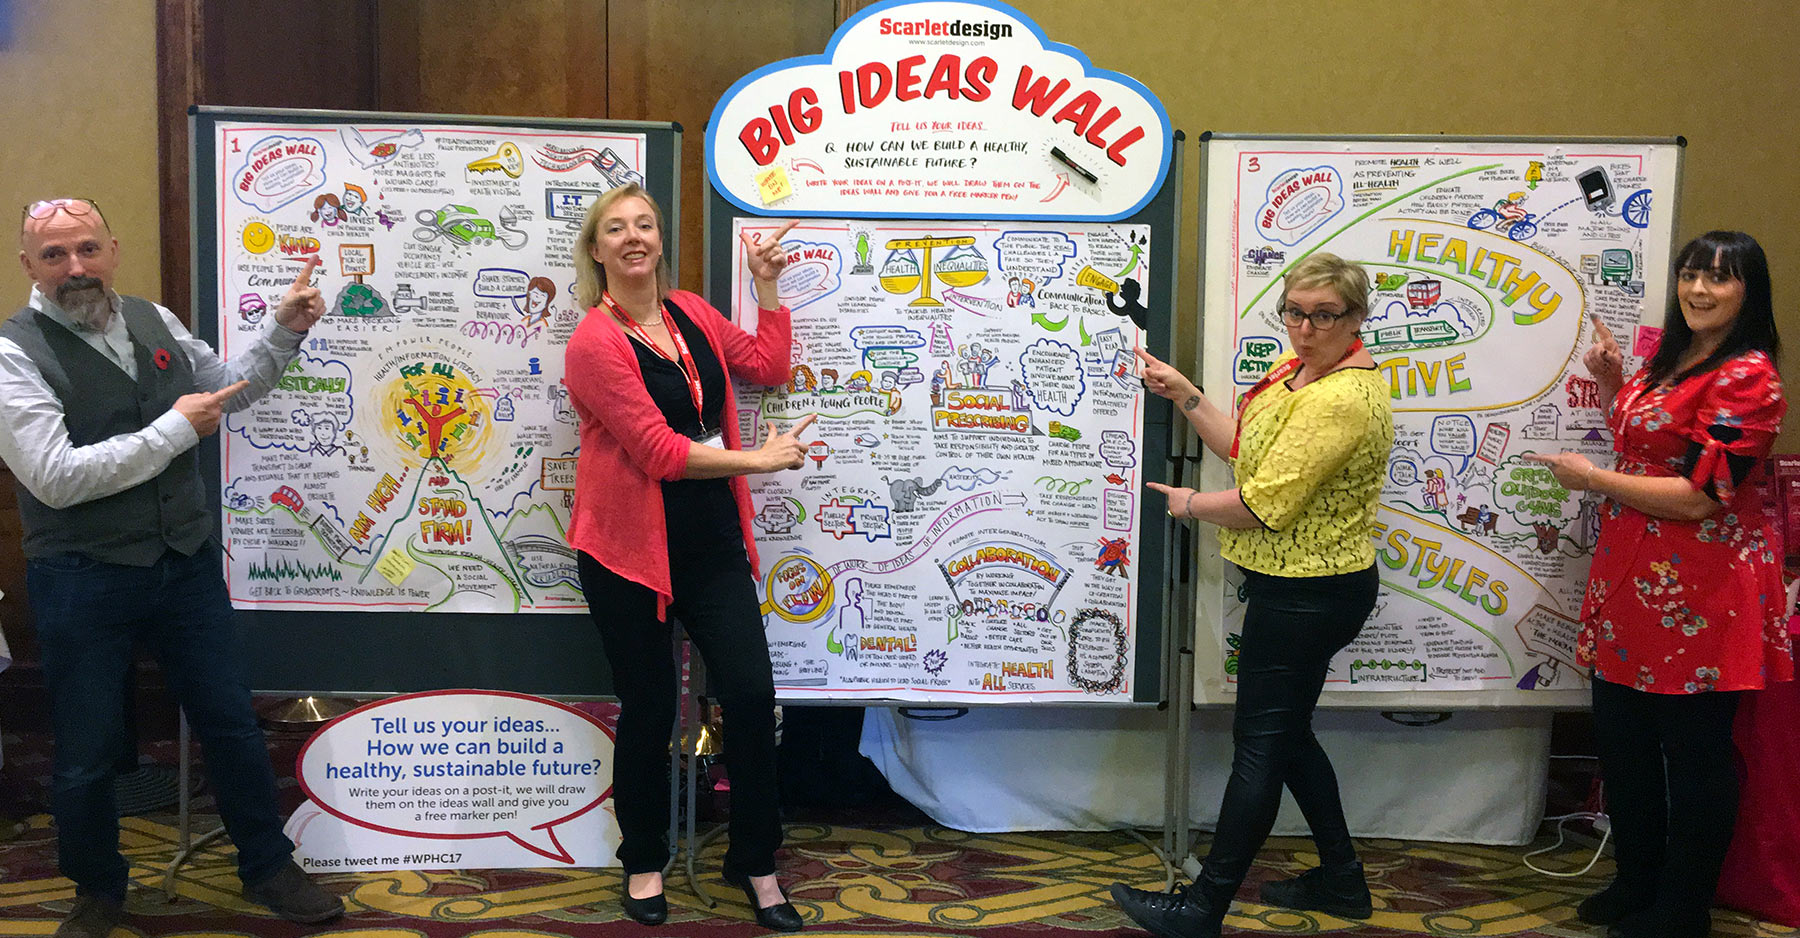 Welsh Public Health Conference 2017 Big Ideas Wall